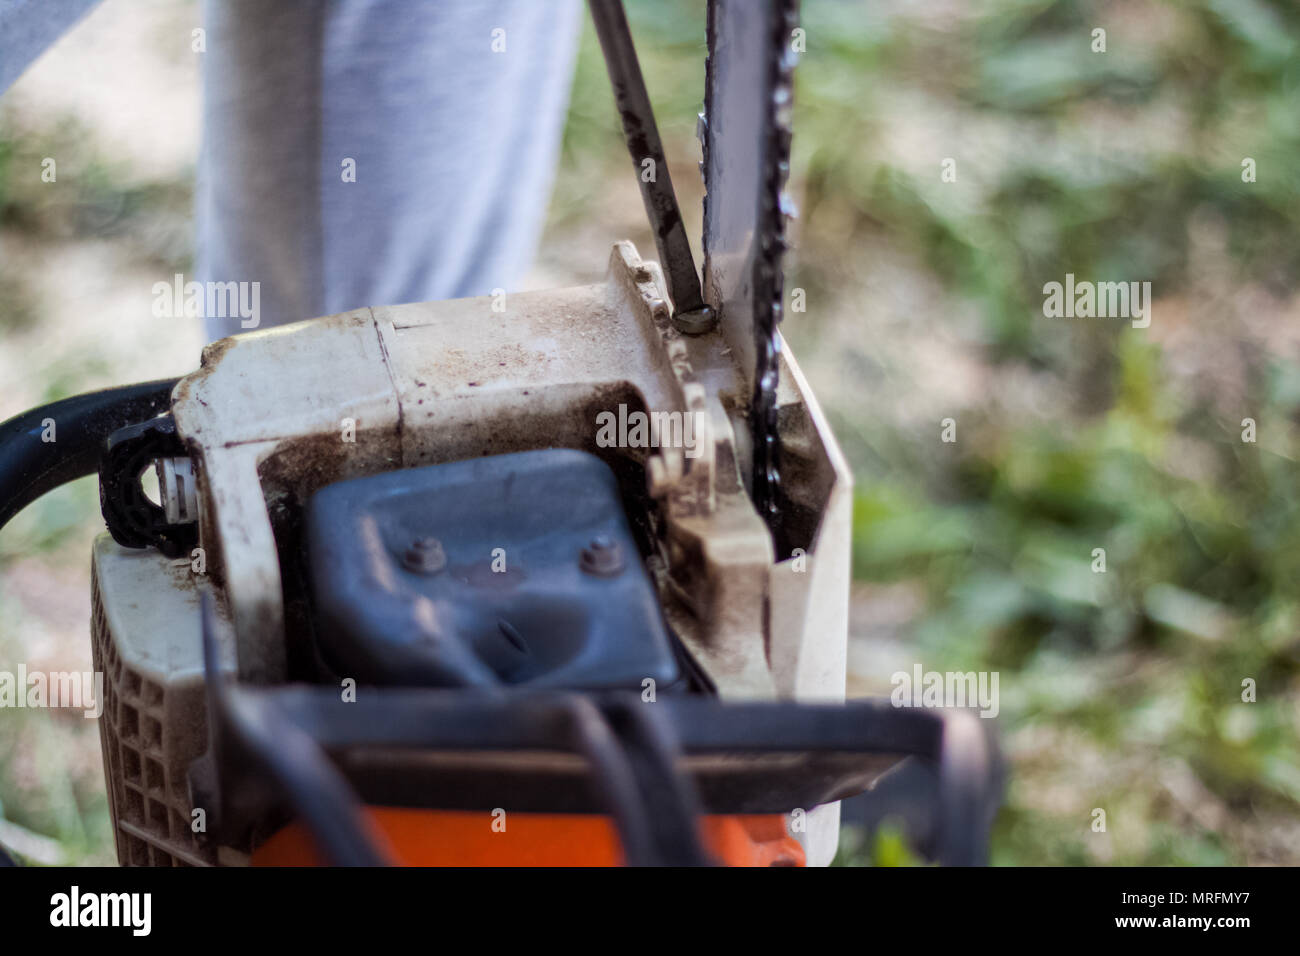 logger chainsaw cutting trees stockfotos & logger chainsaw cutting